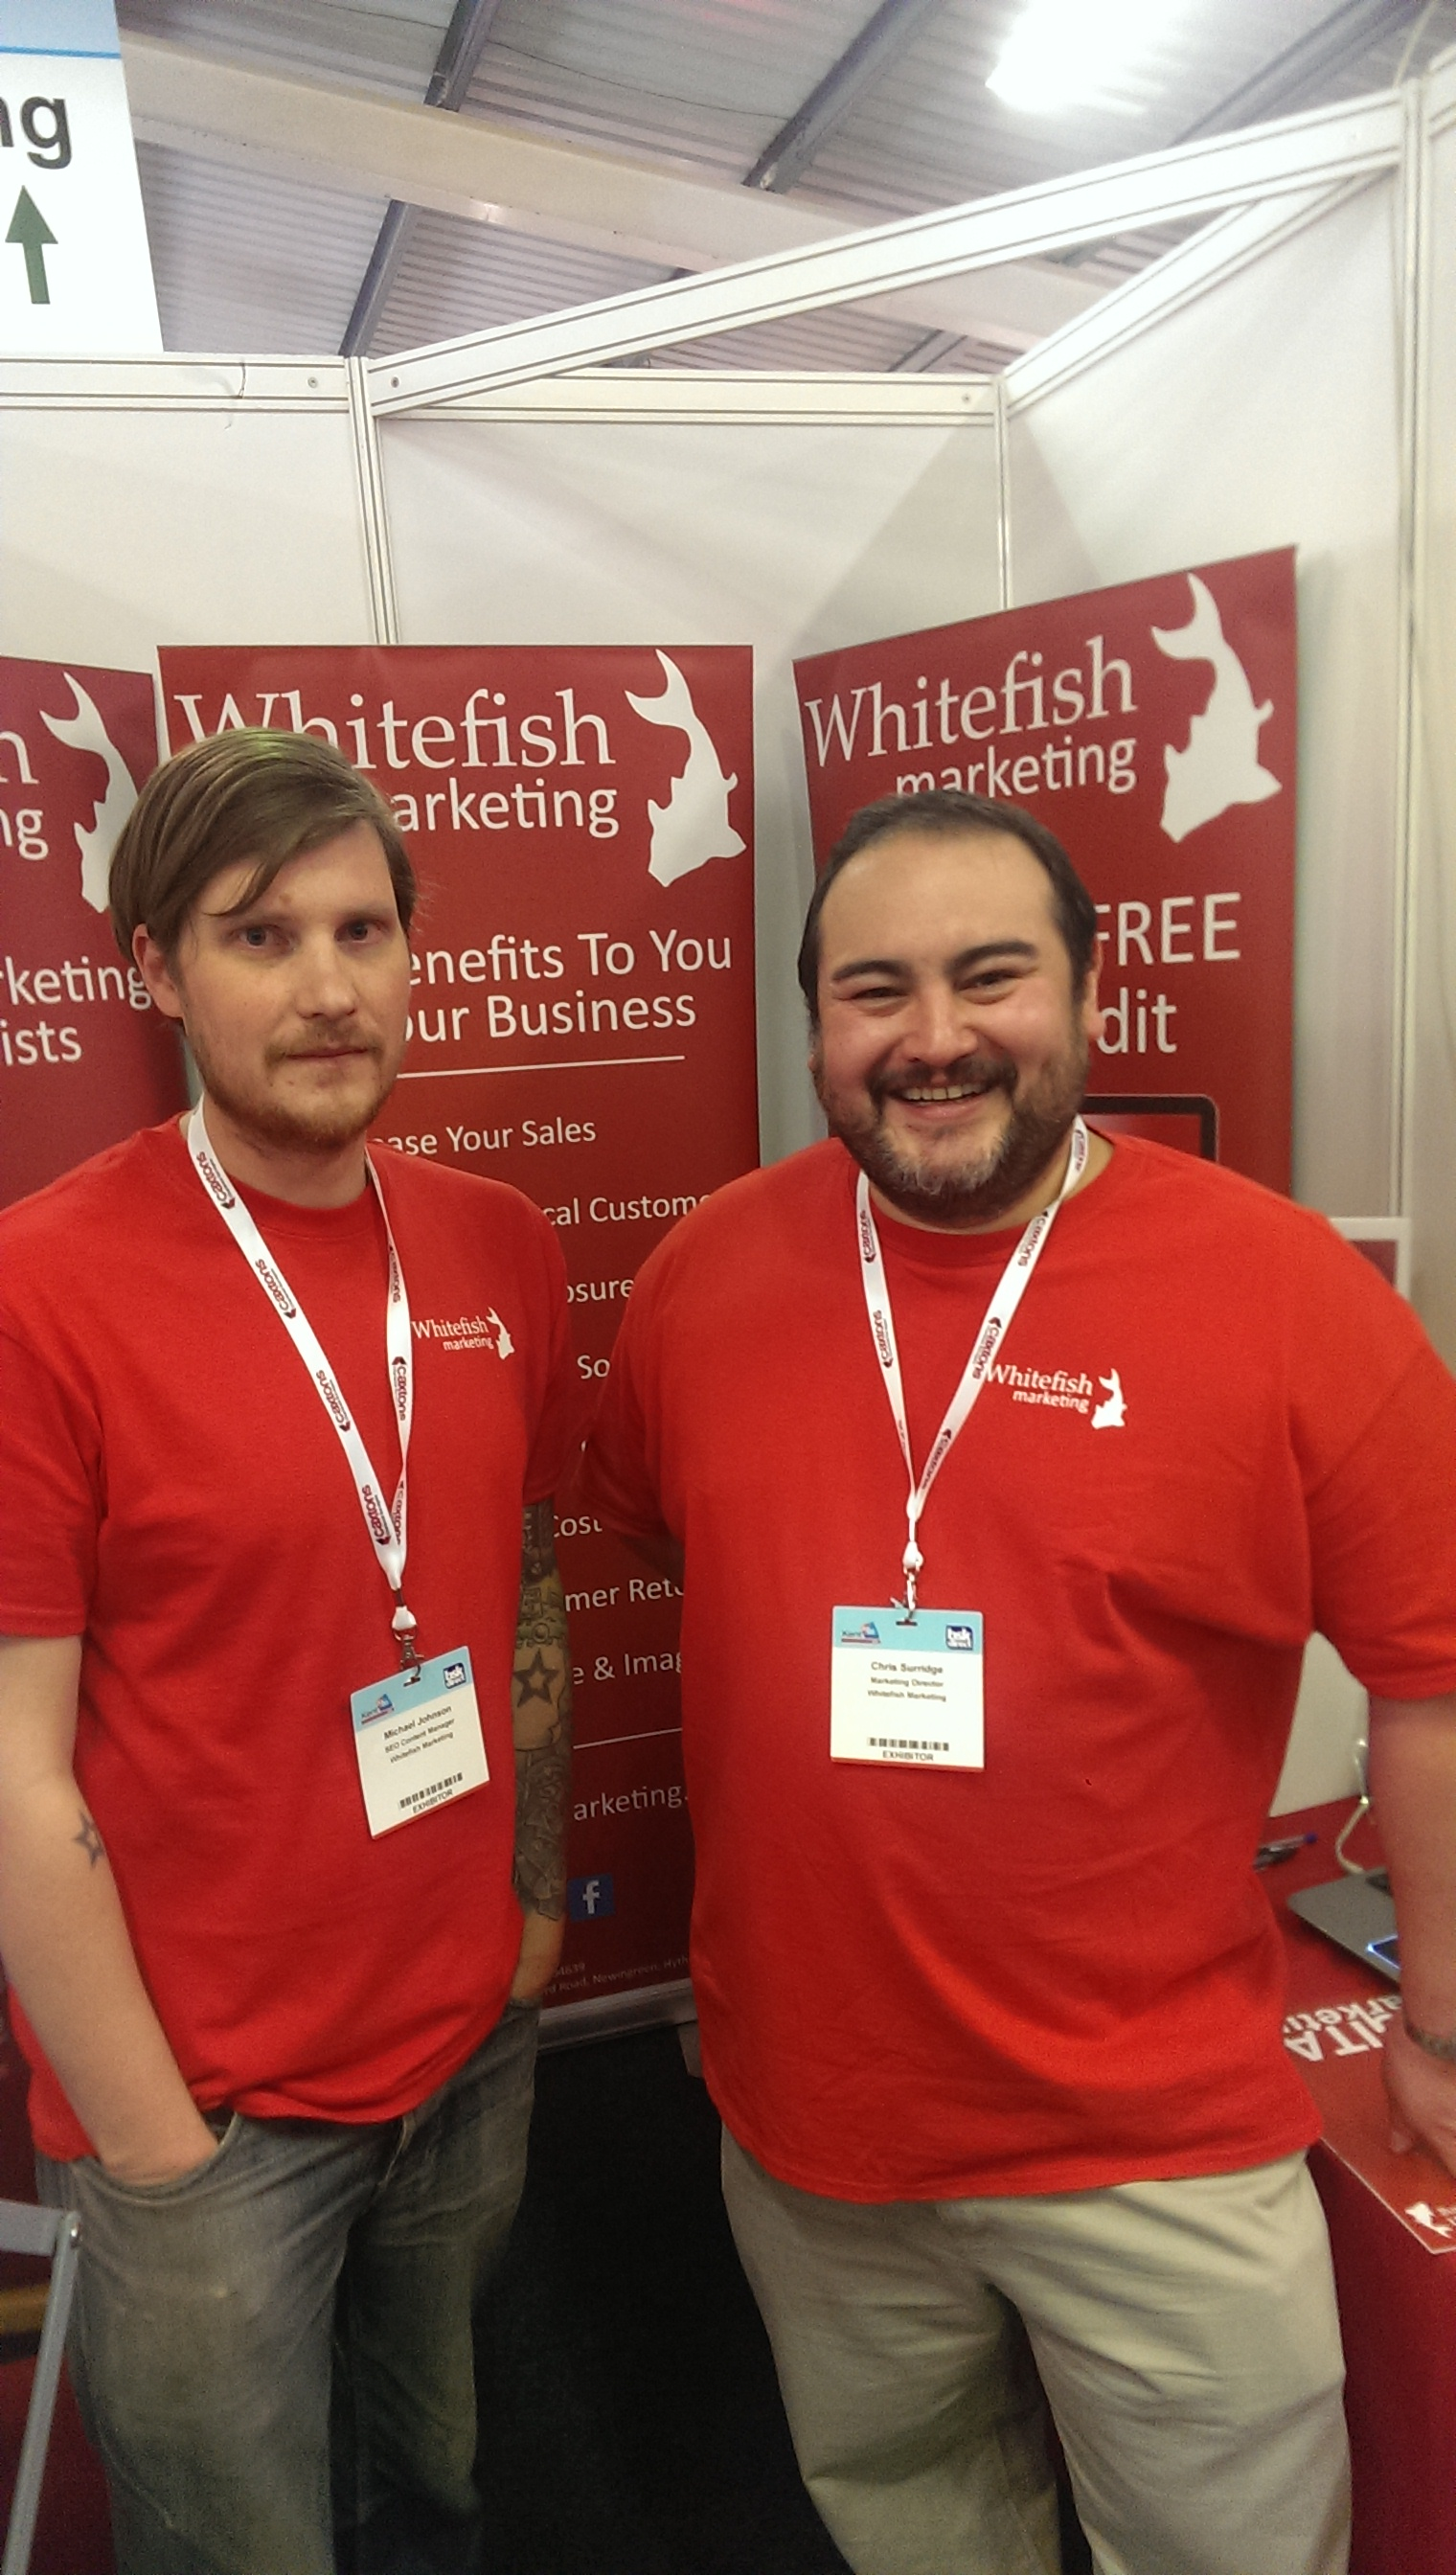 A recount of Whitefish Marketing at this year's Kent2020 exhibition